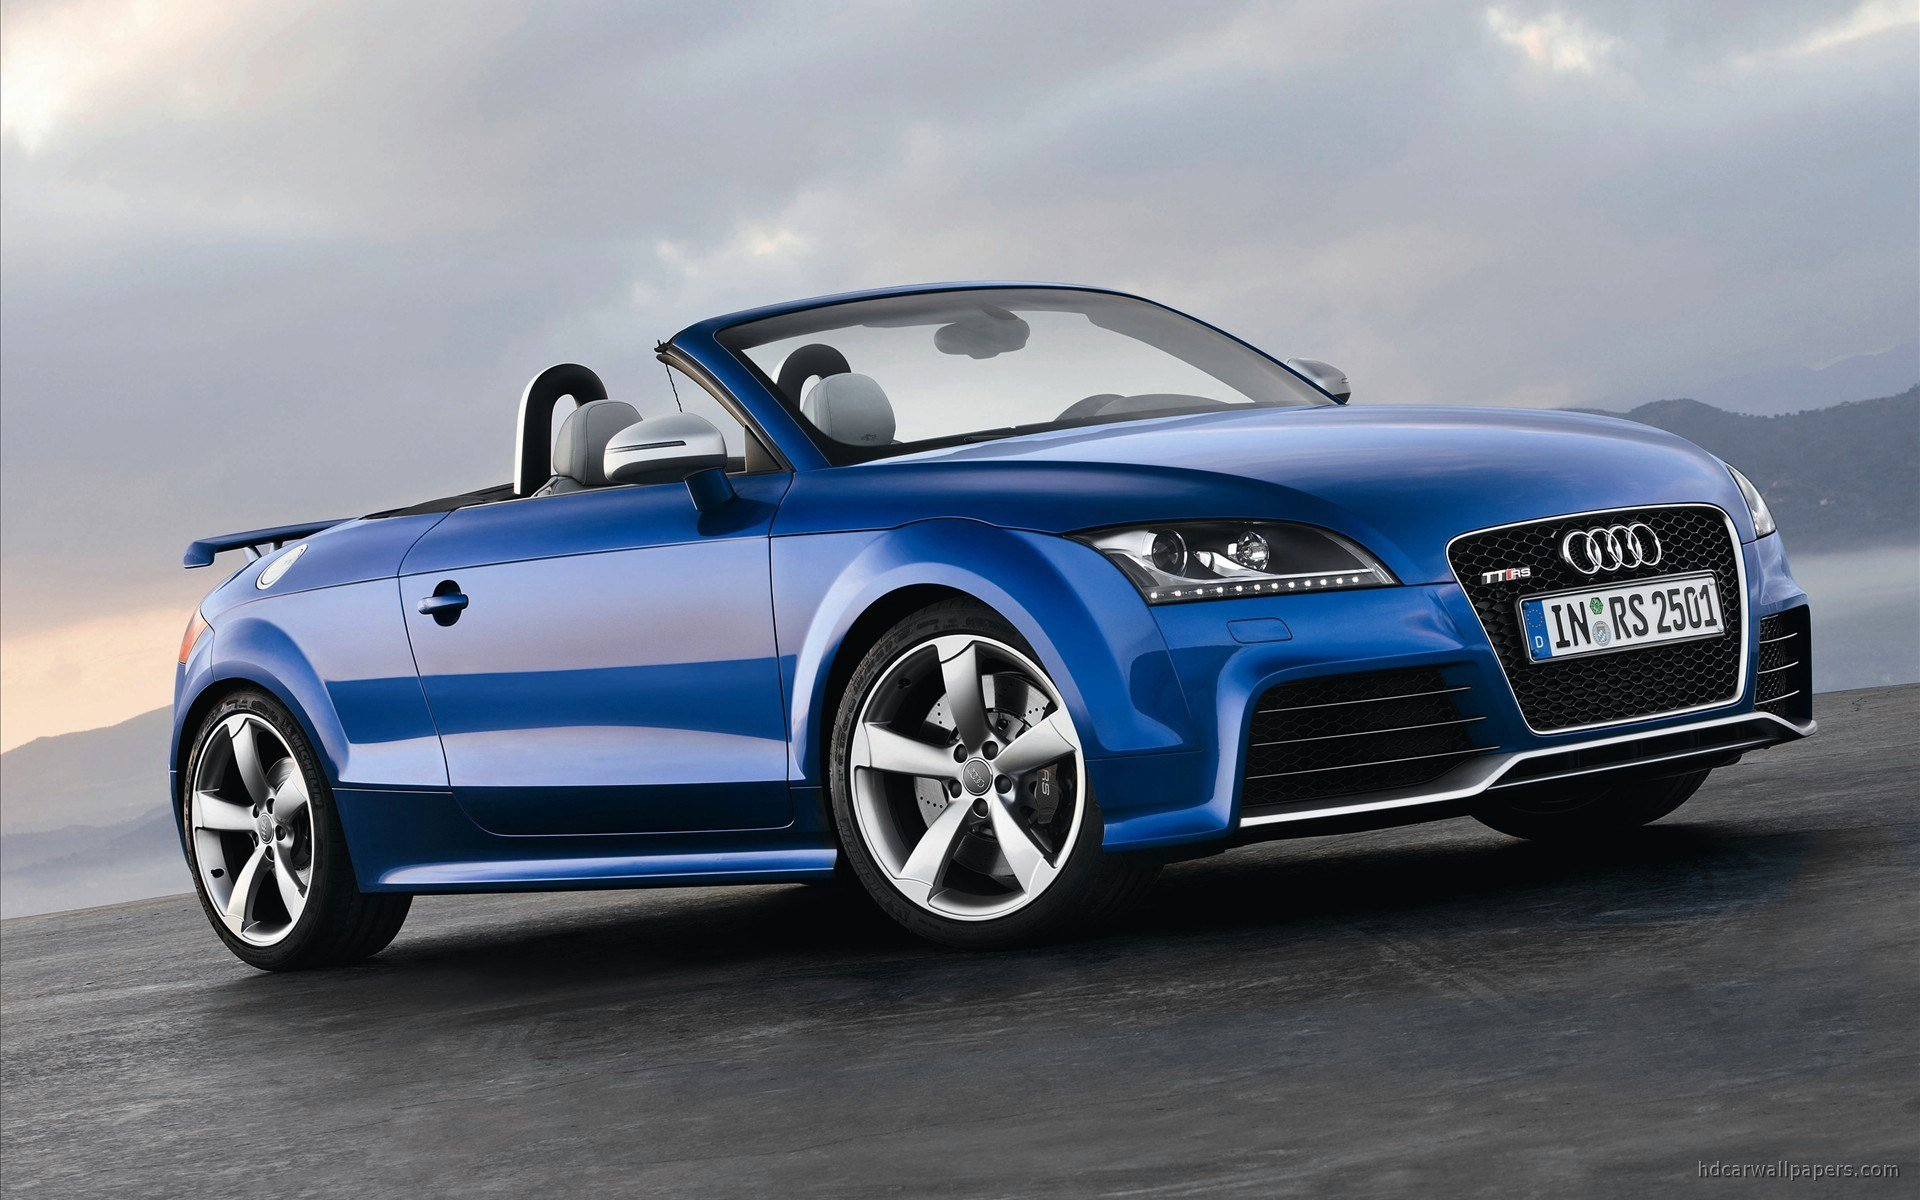 Latest 2010 Audi Tt Rs Roadster Wallpaper Hd Car Wallpapers Free Download